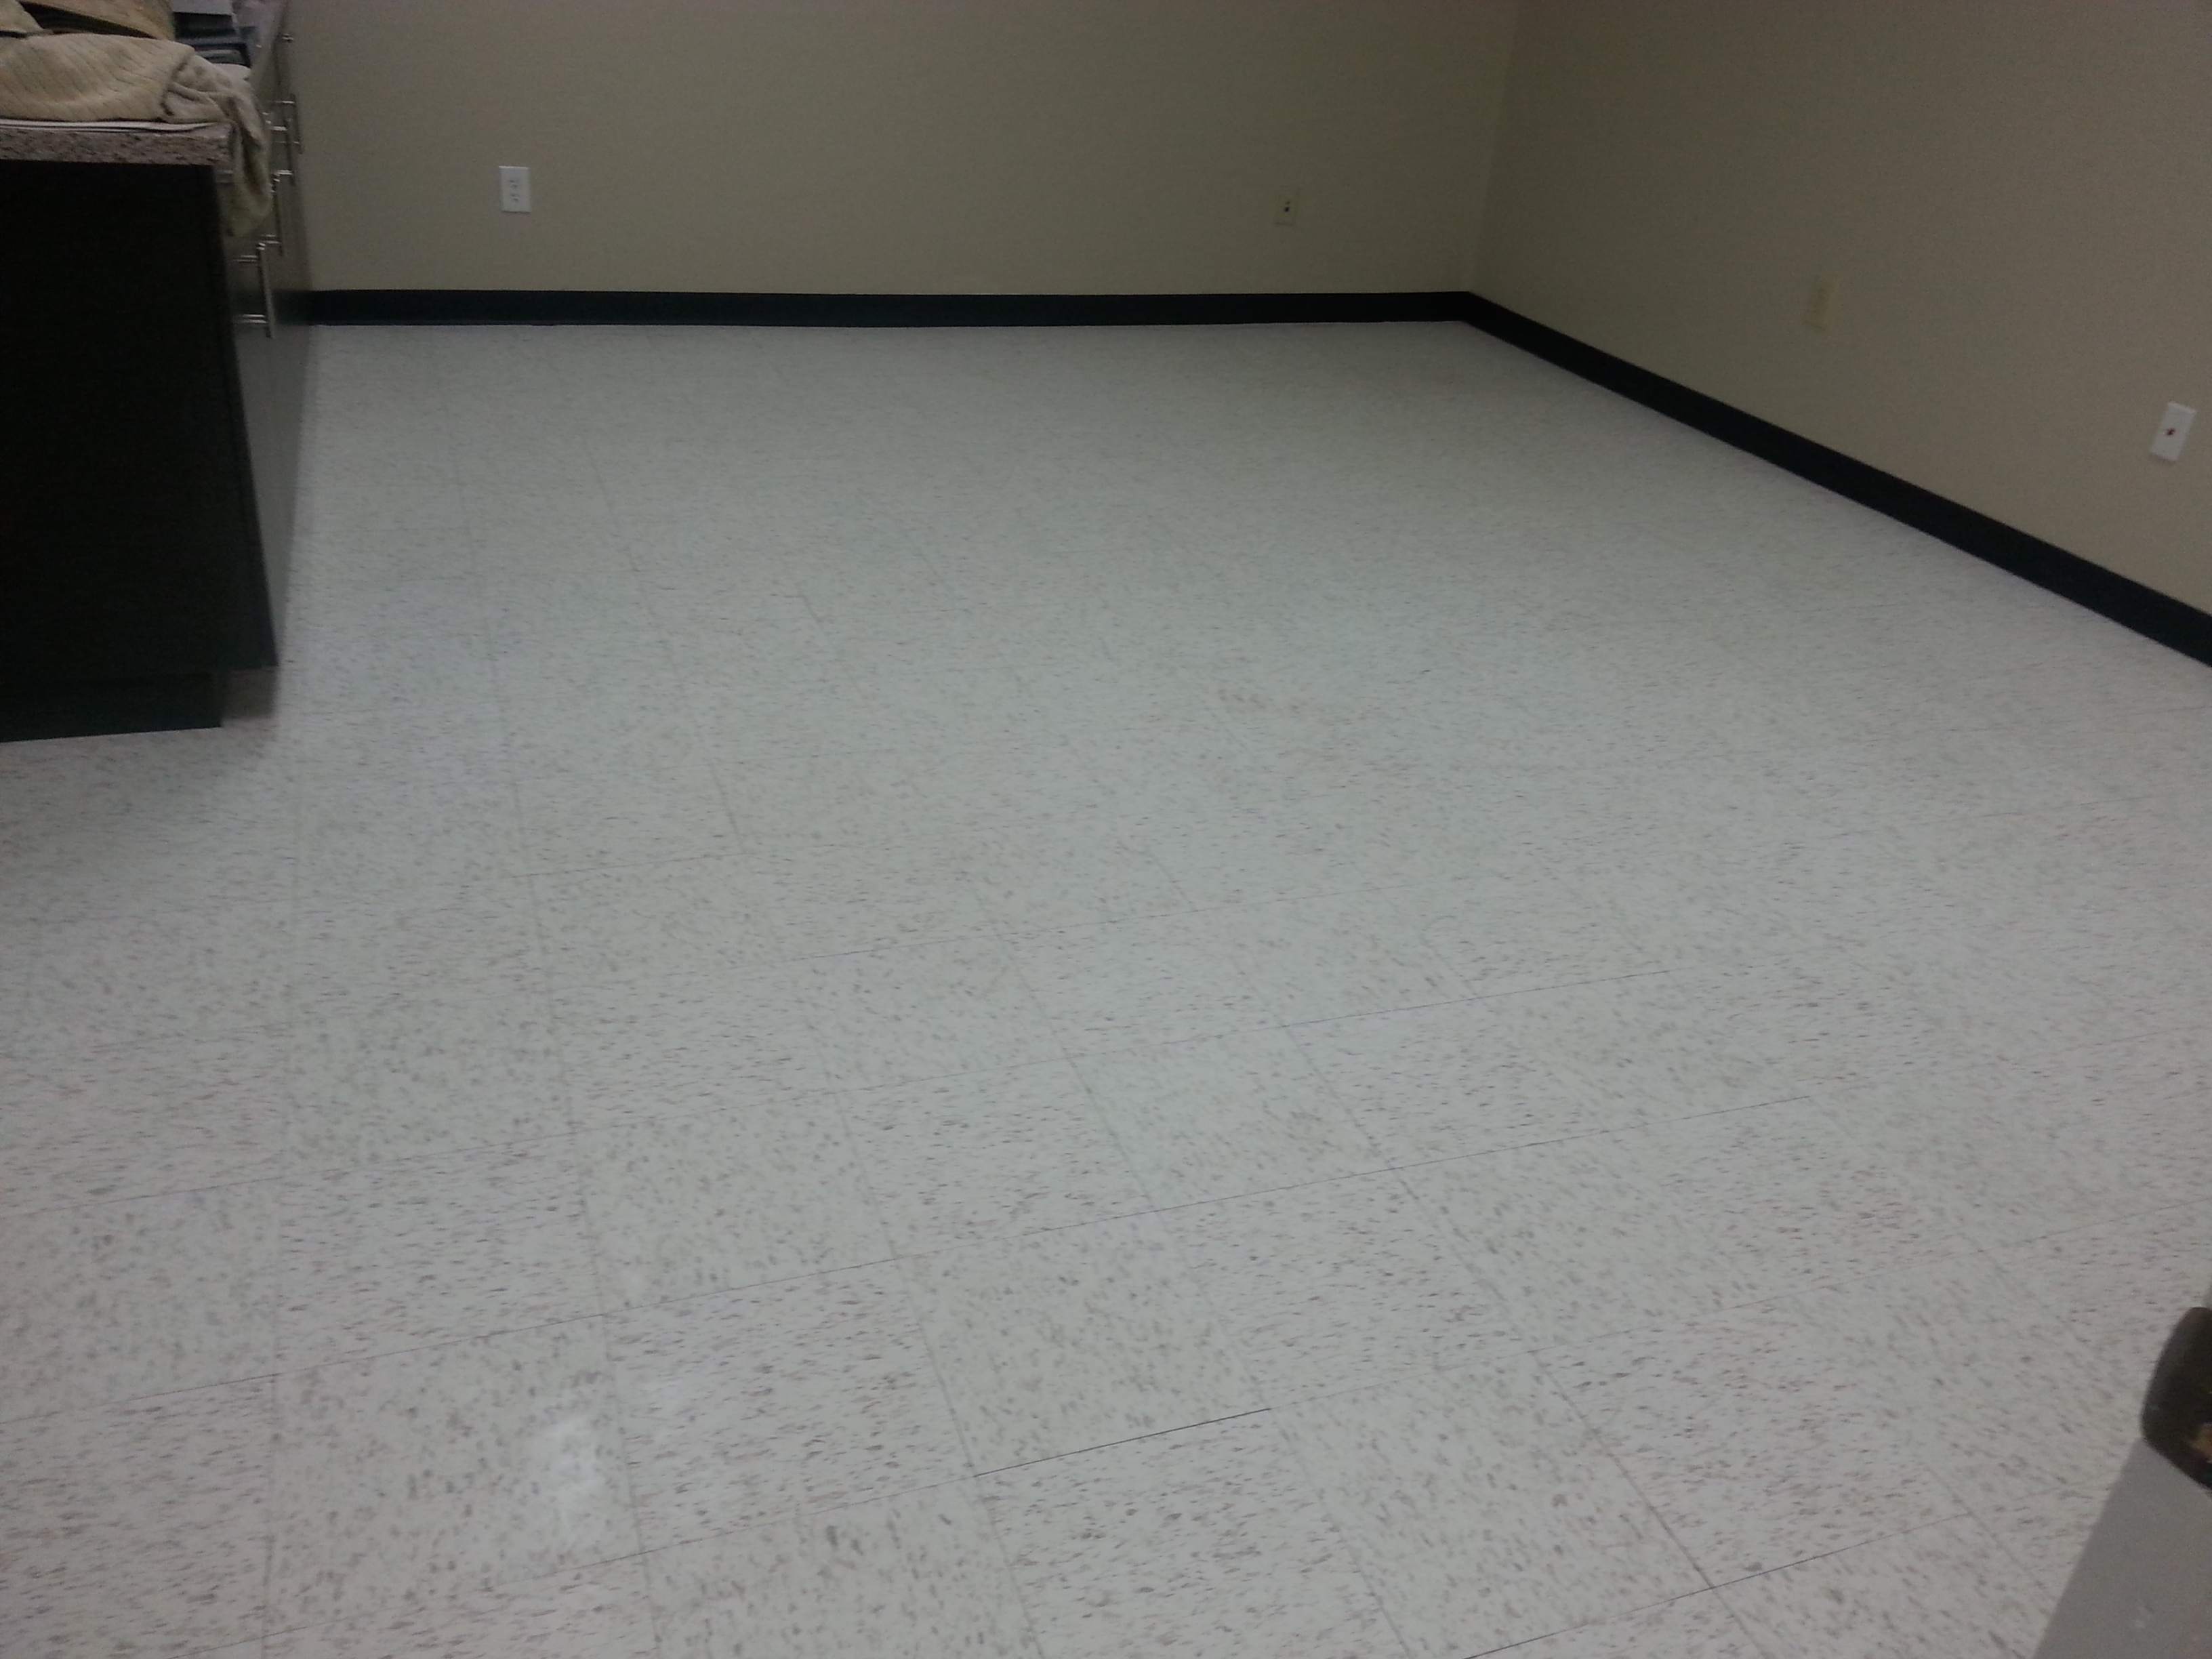 Vct linoleum abracadabra carpet cleaners vct vinyl composition tile and linoleum cleaning dailygadgetfo Images